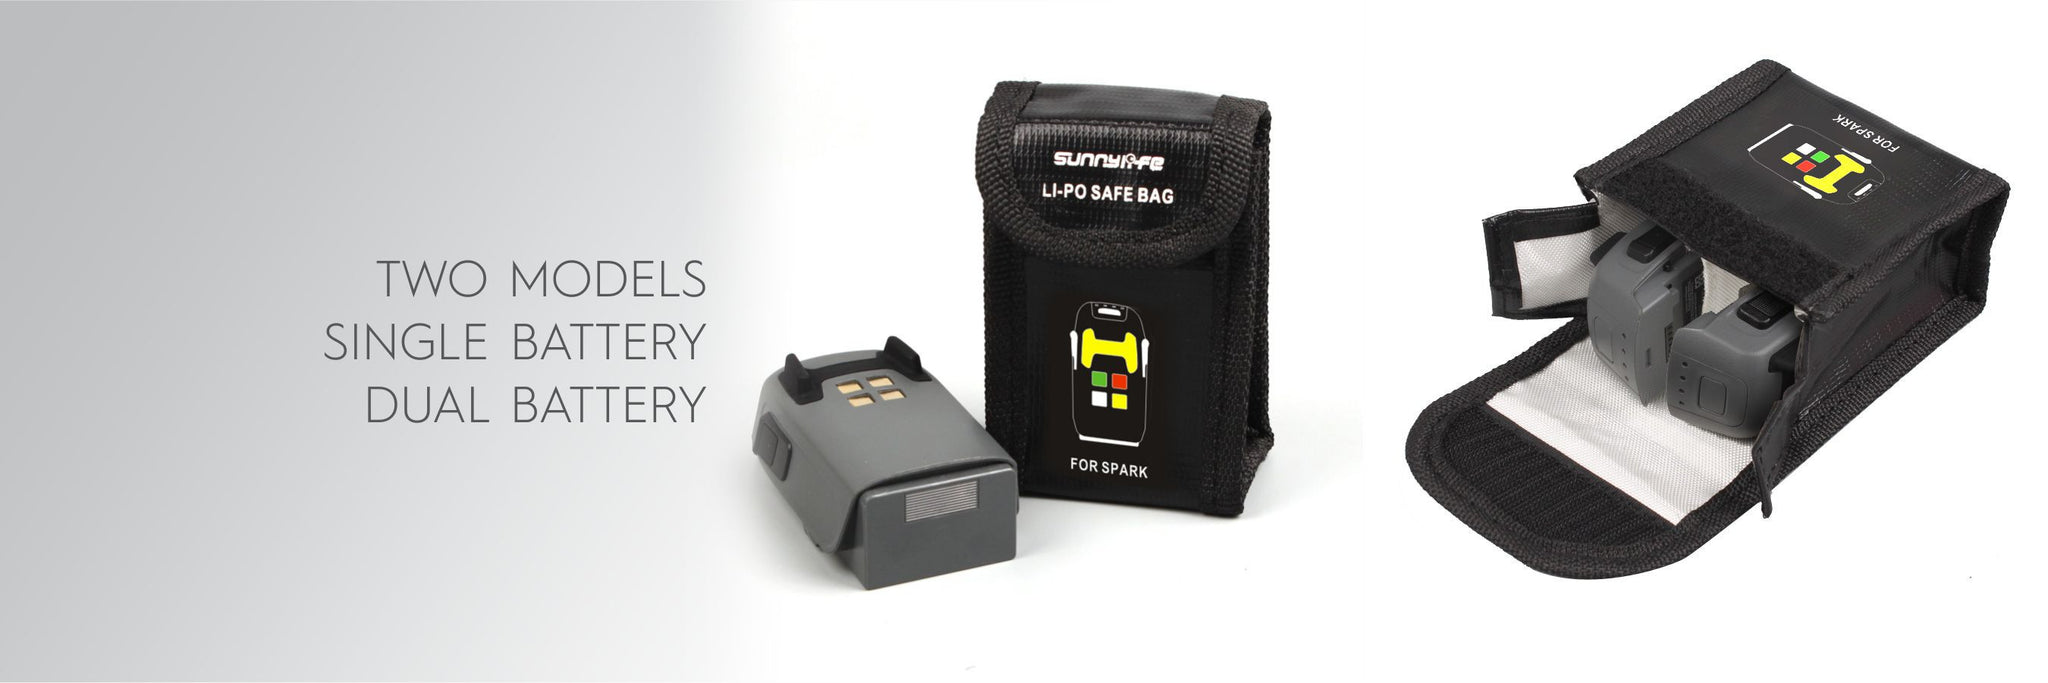 Sunnylife LiPo Safe Bag for DJI Spark Dual Battery